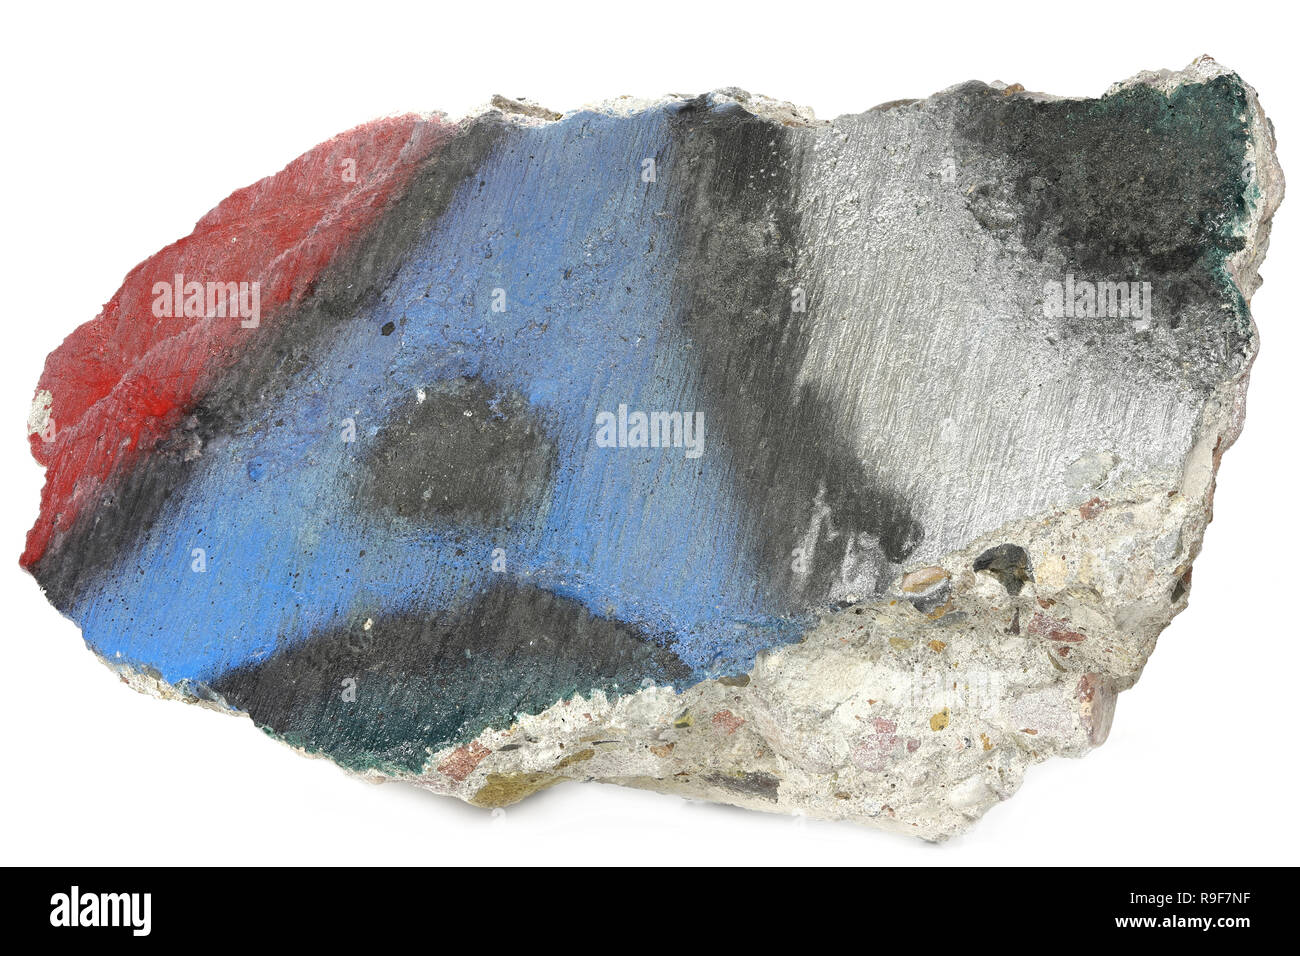 fragment of the Berlin Wall isolated on white background - Stock Image